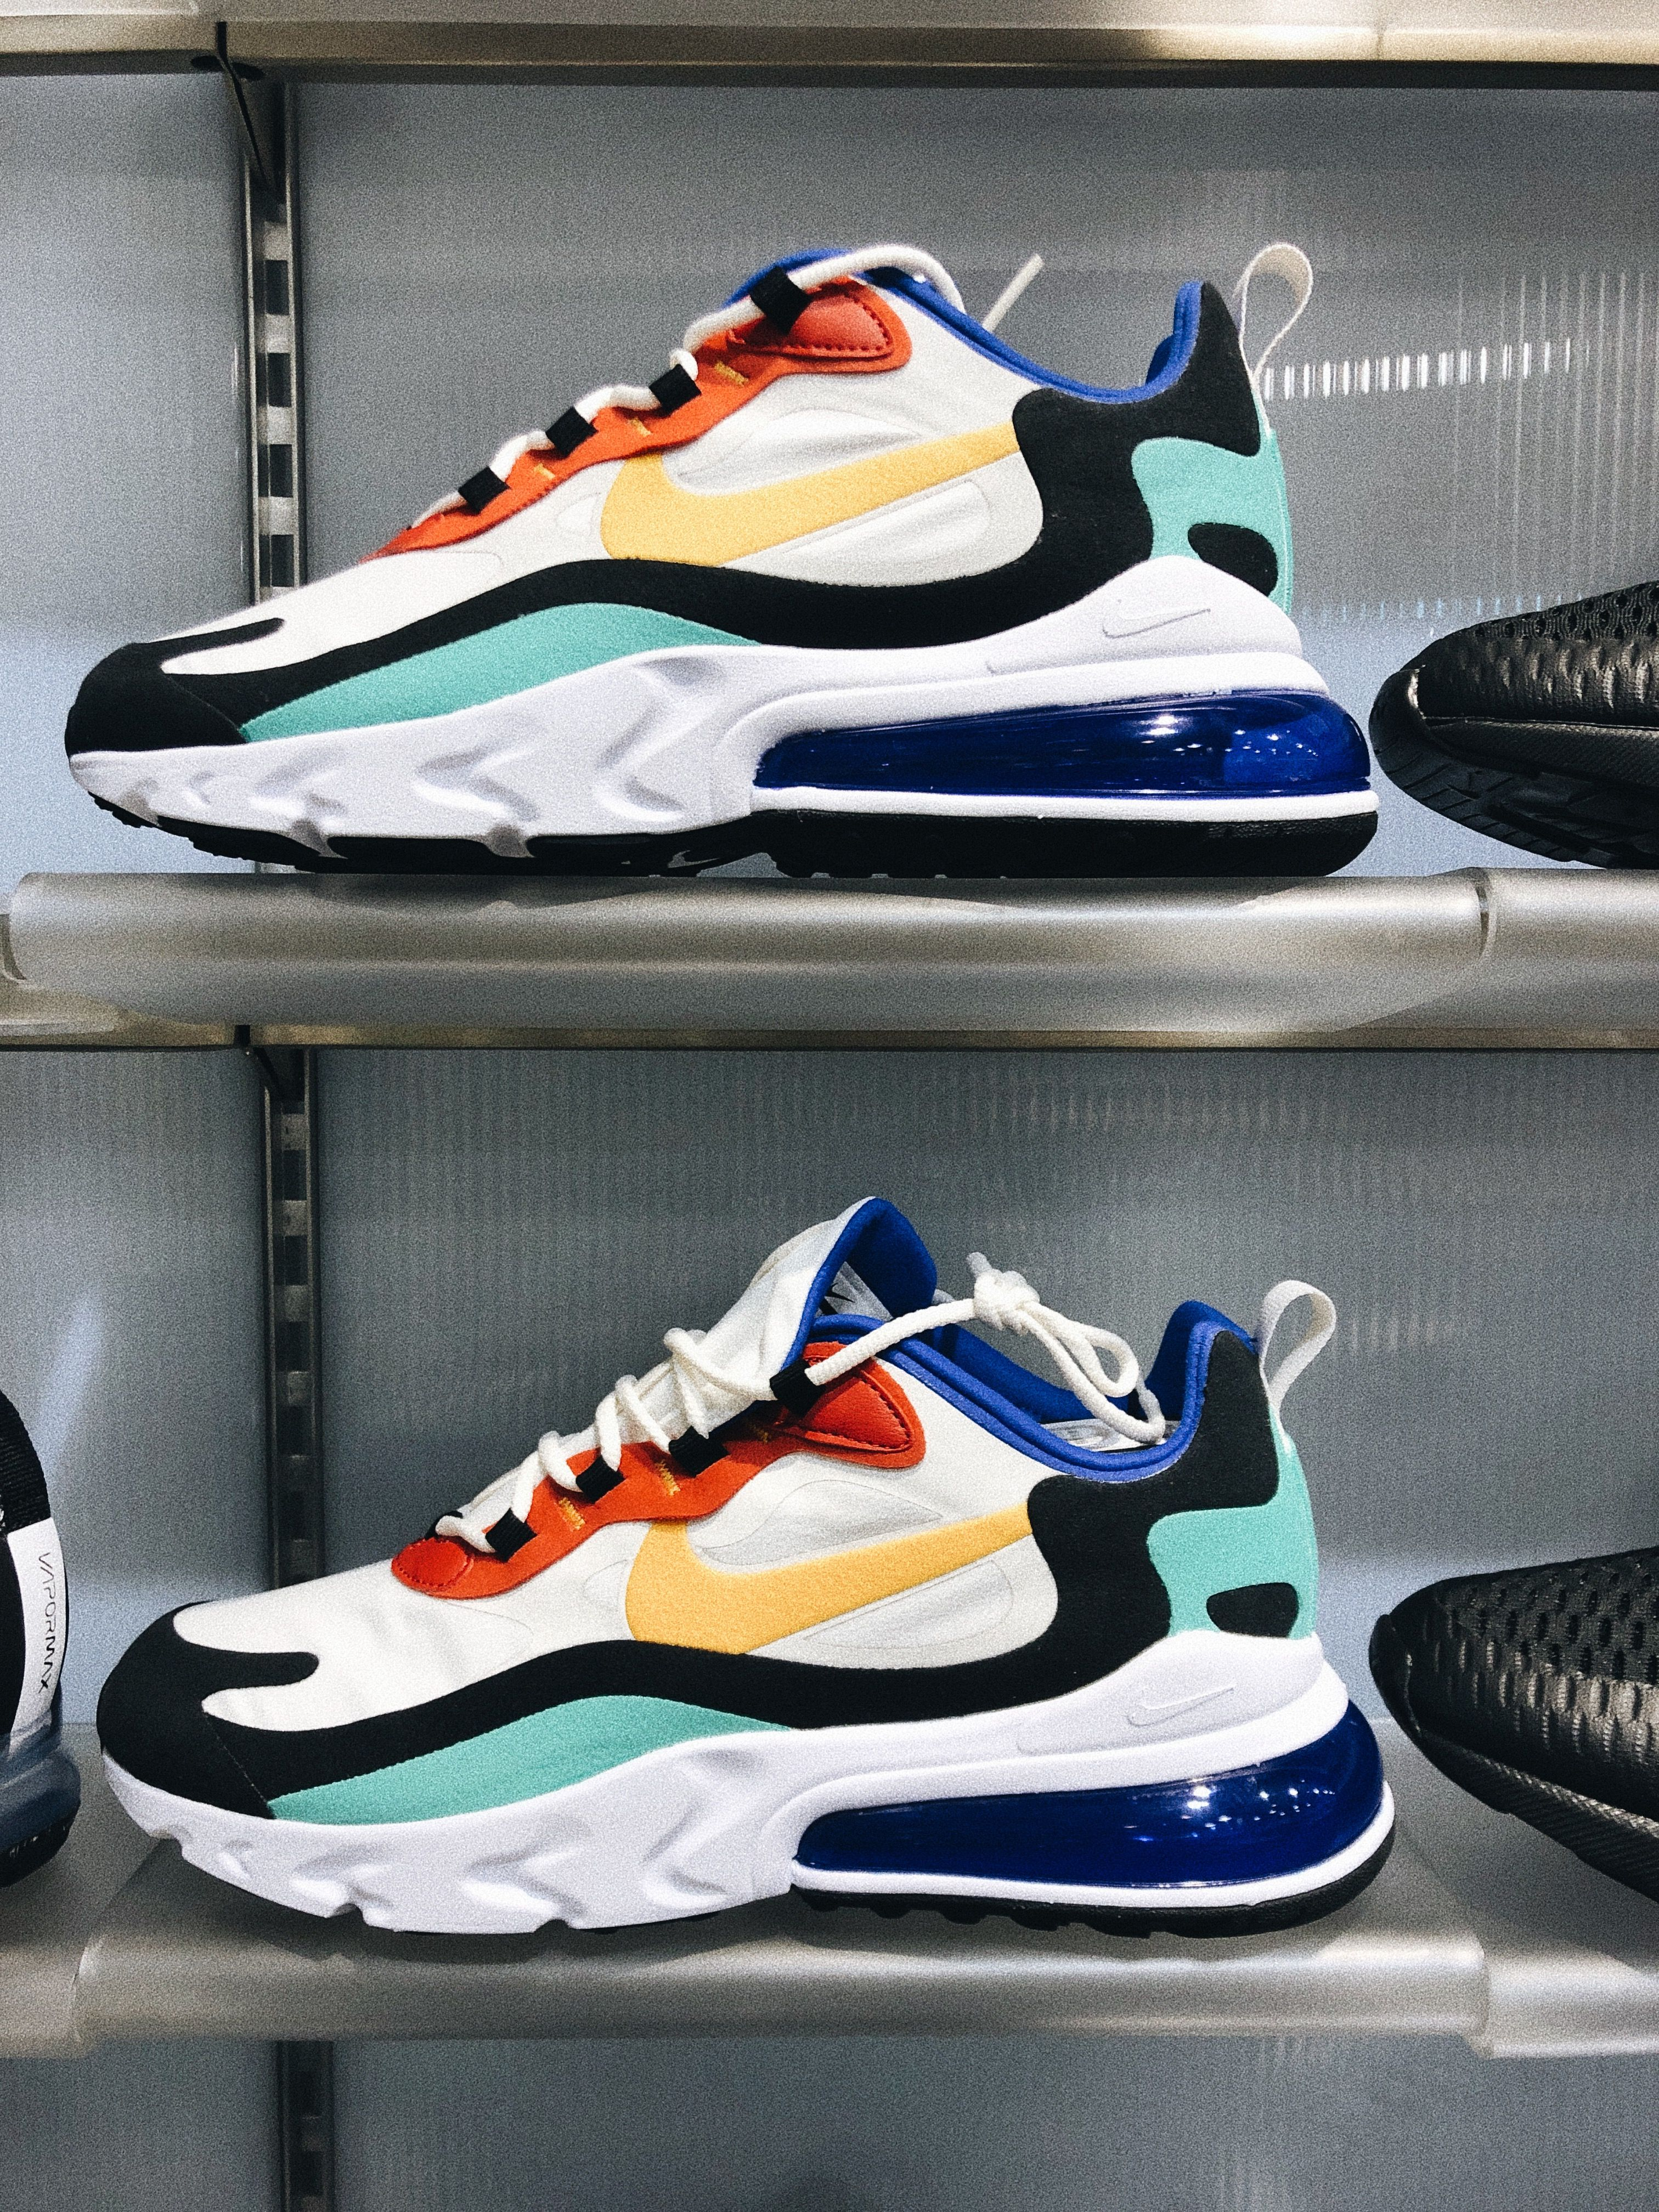 Men's Nike Air Max 270 React Casual Shoes en 2020 | Modelos